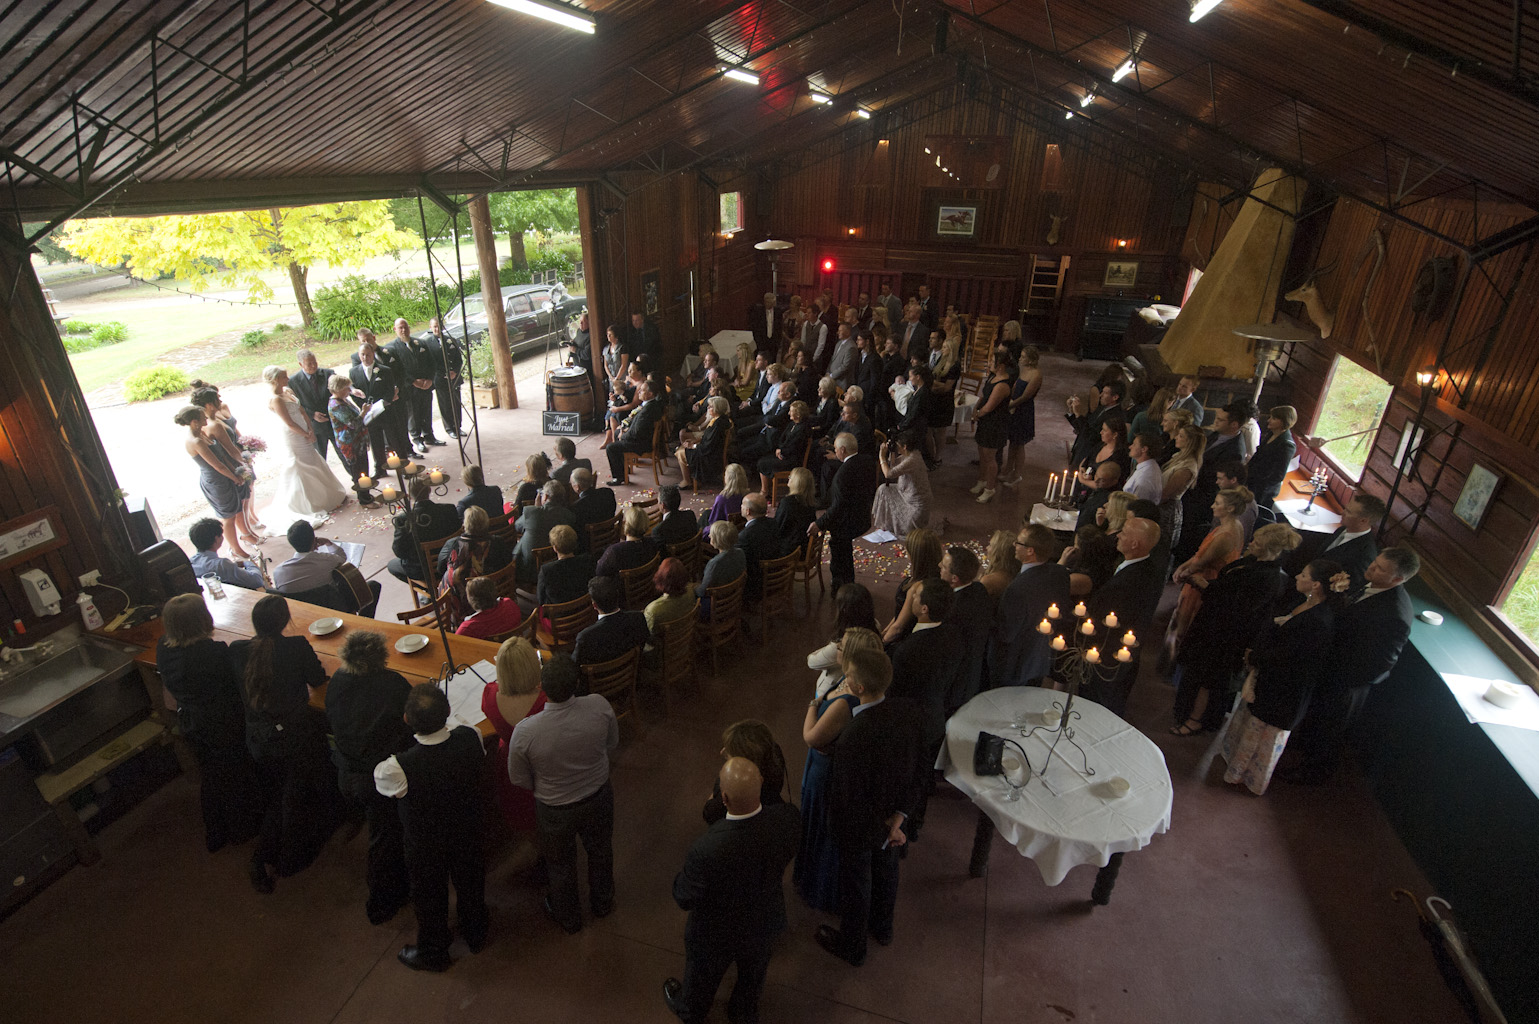 Wedding Photographyof a ceremony taking place in a barn, at forest edge